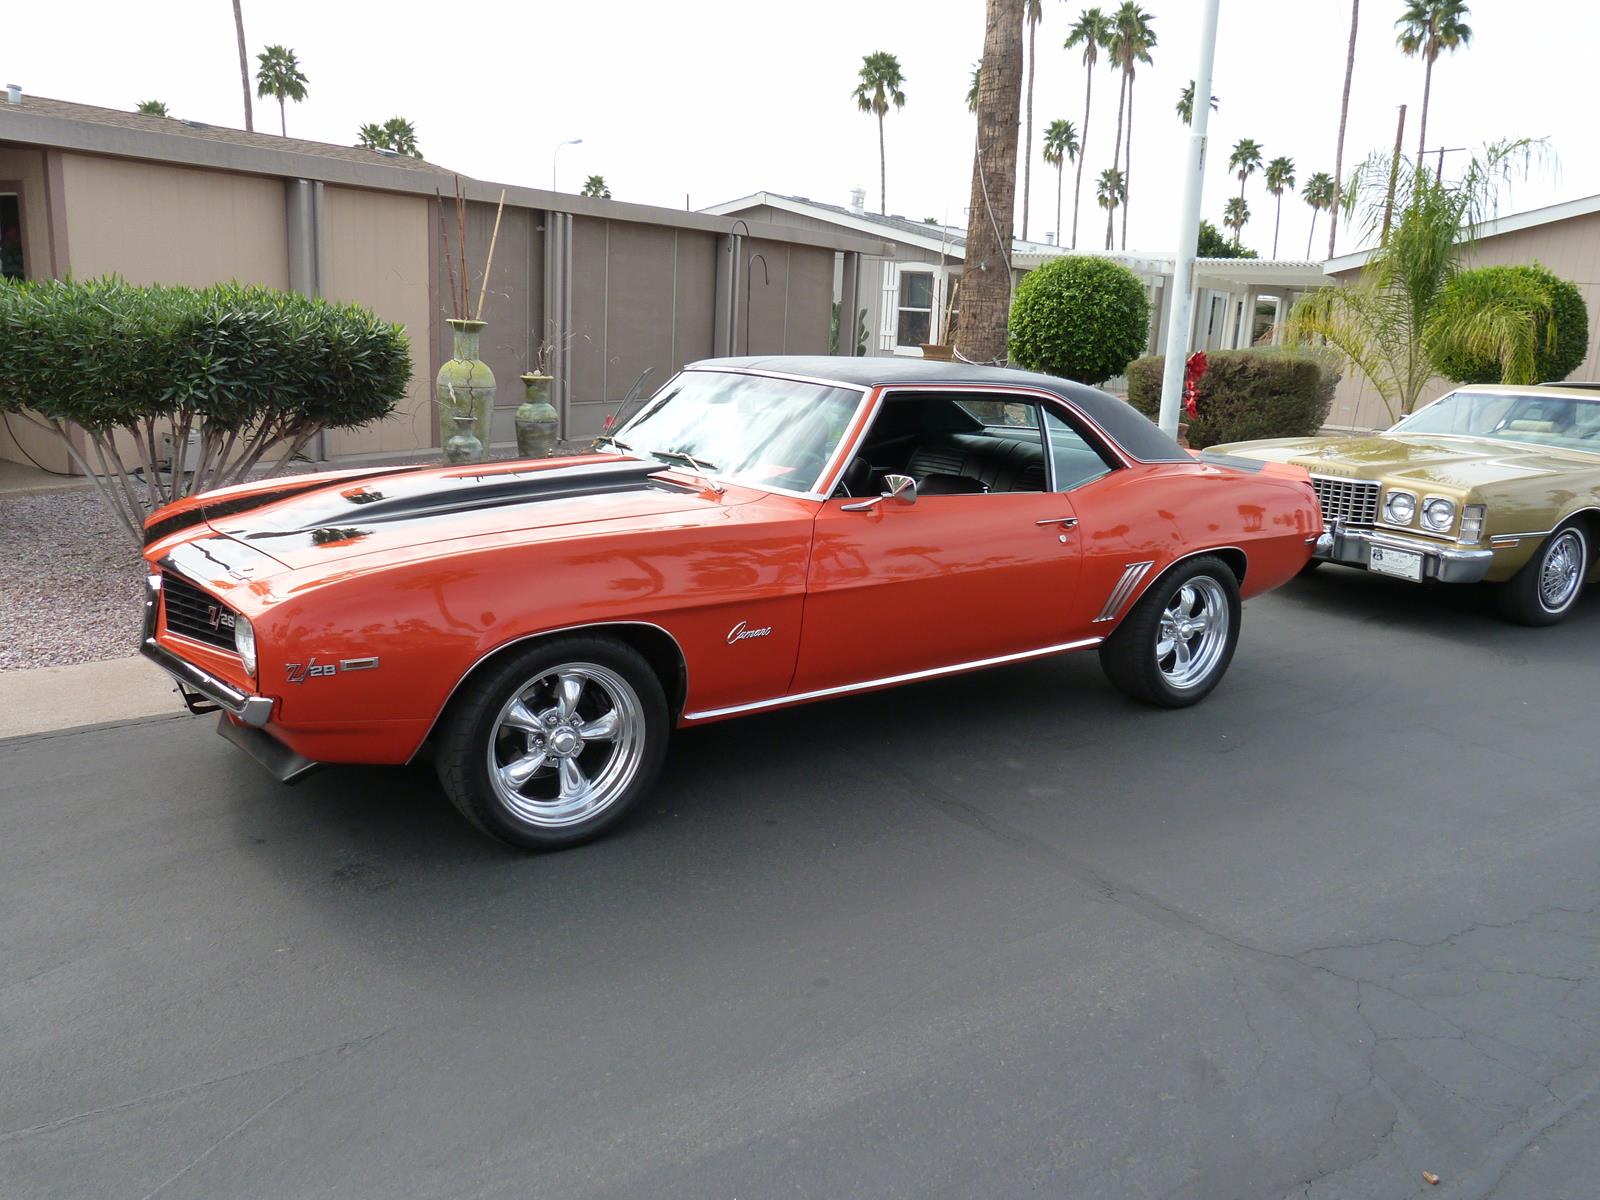 Classic Cars For Rent In Phoenix Az